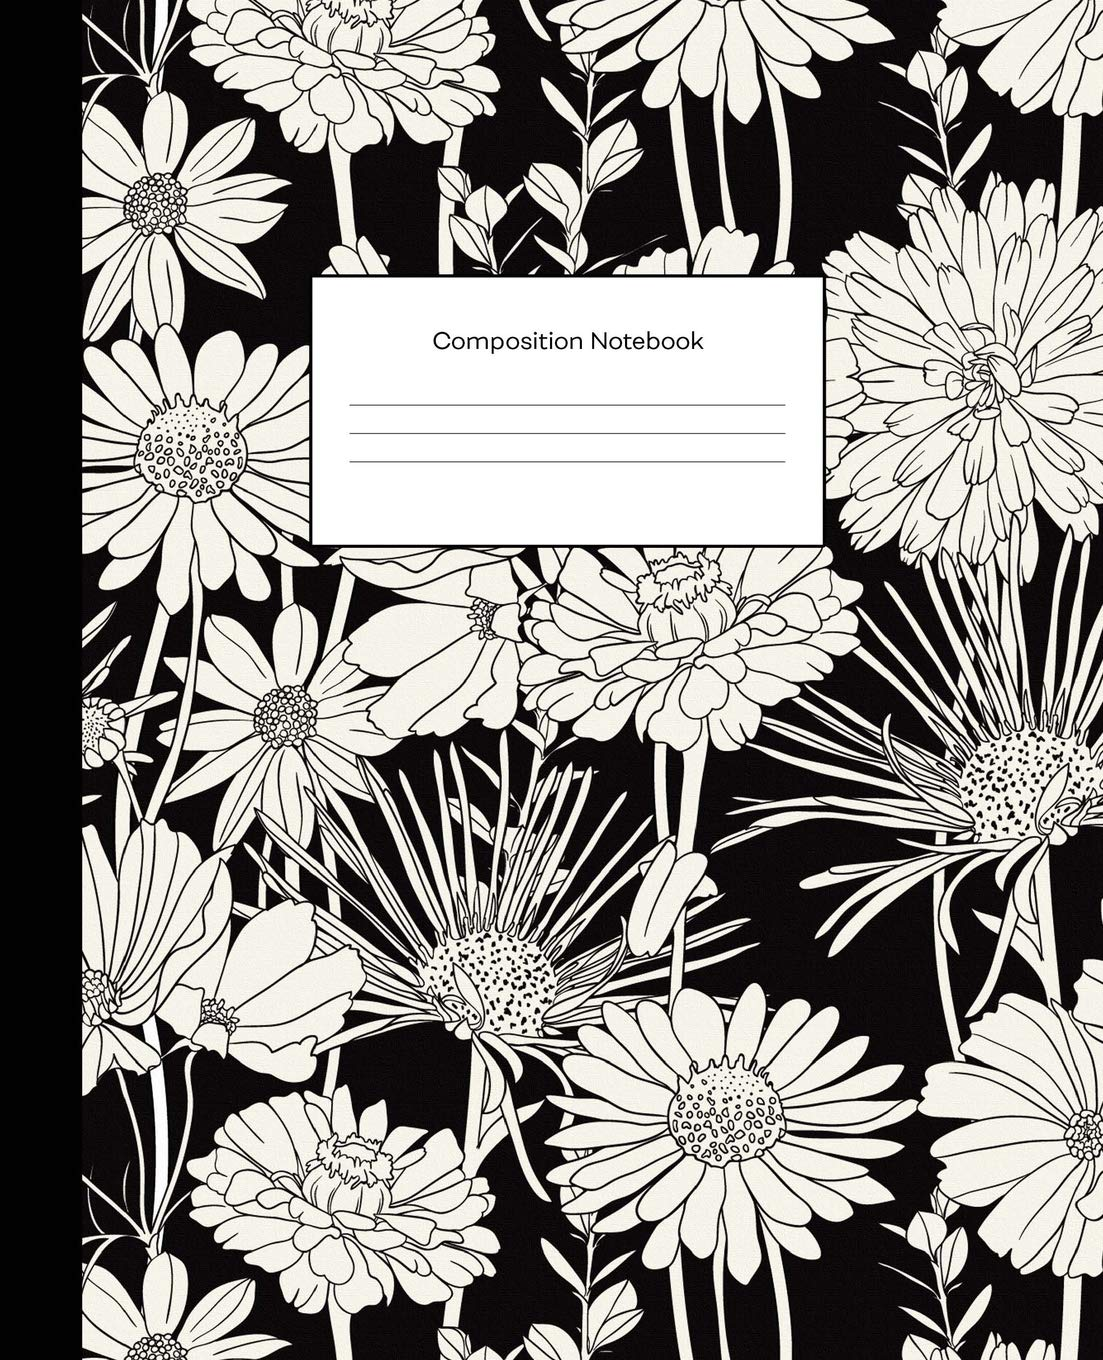 Amazon Com Composition Notebook Black White Floral Flowers